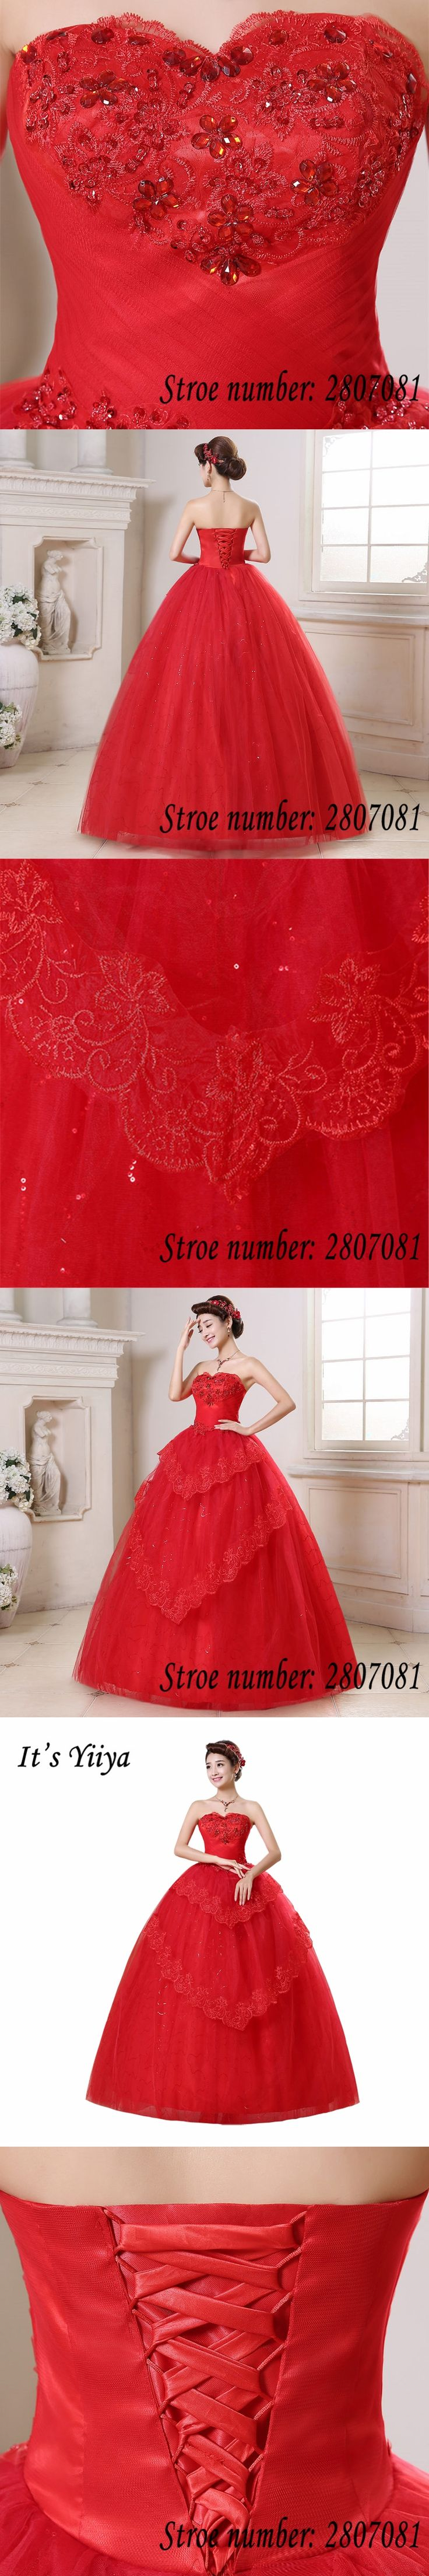 Free Shipping Vestidos De Novia Real Photo Red Sequins Crystal Strapless Wedding Dresses Cheap Princess Bride Frocks HS168